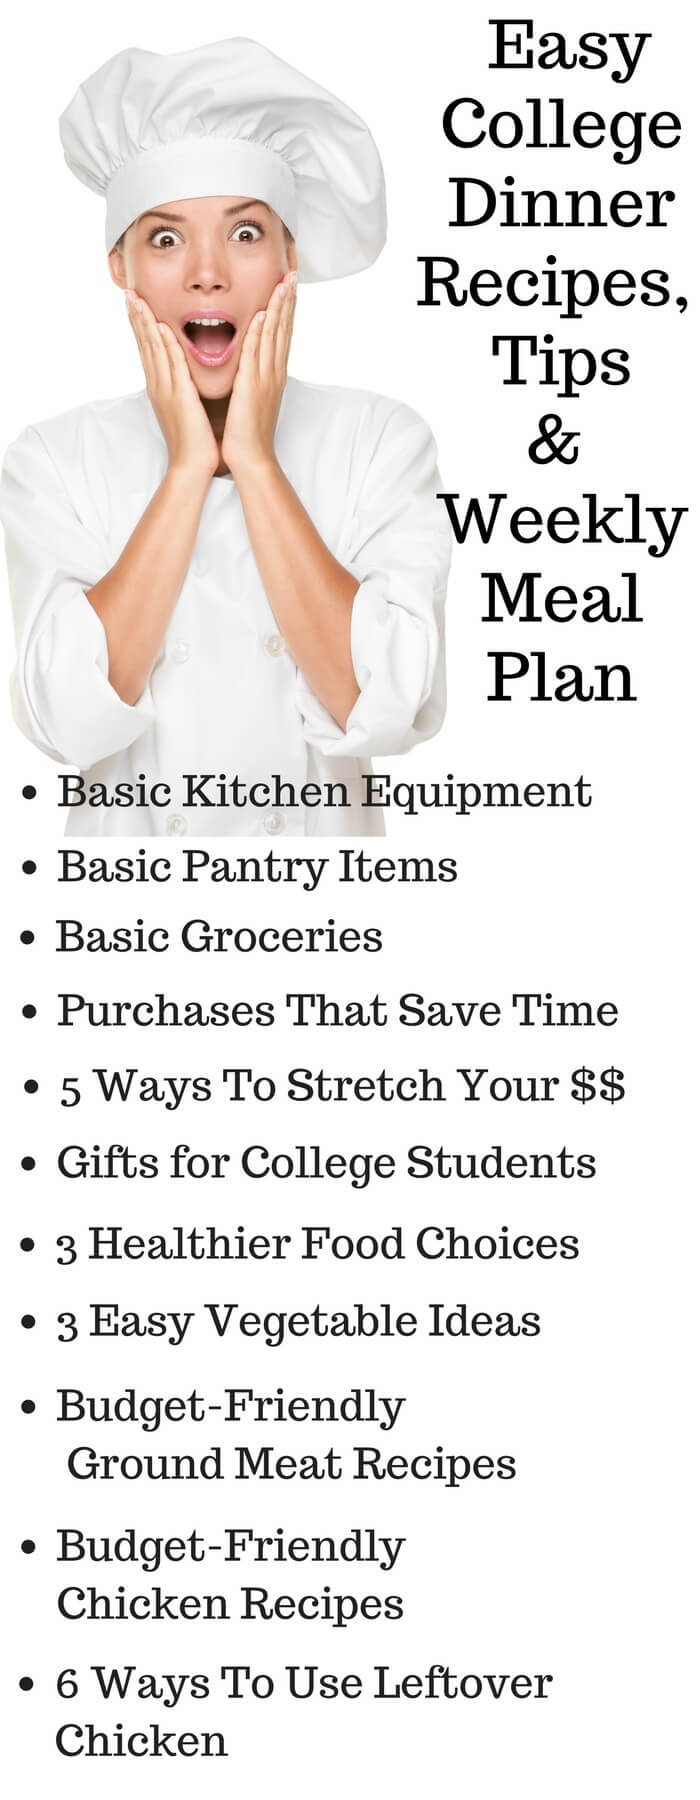 easy college dinner recipes tips and weekly meal plan easy dinner recipes for college